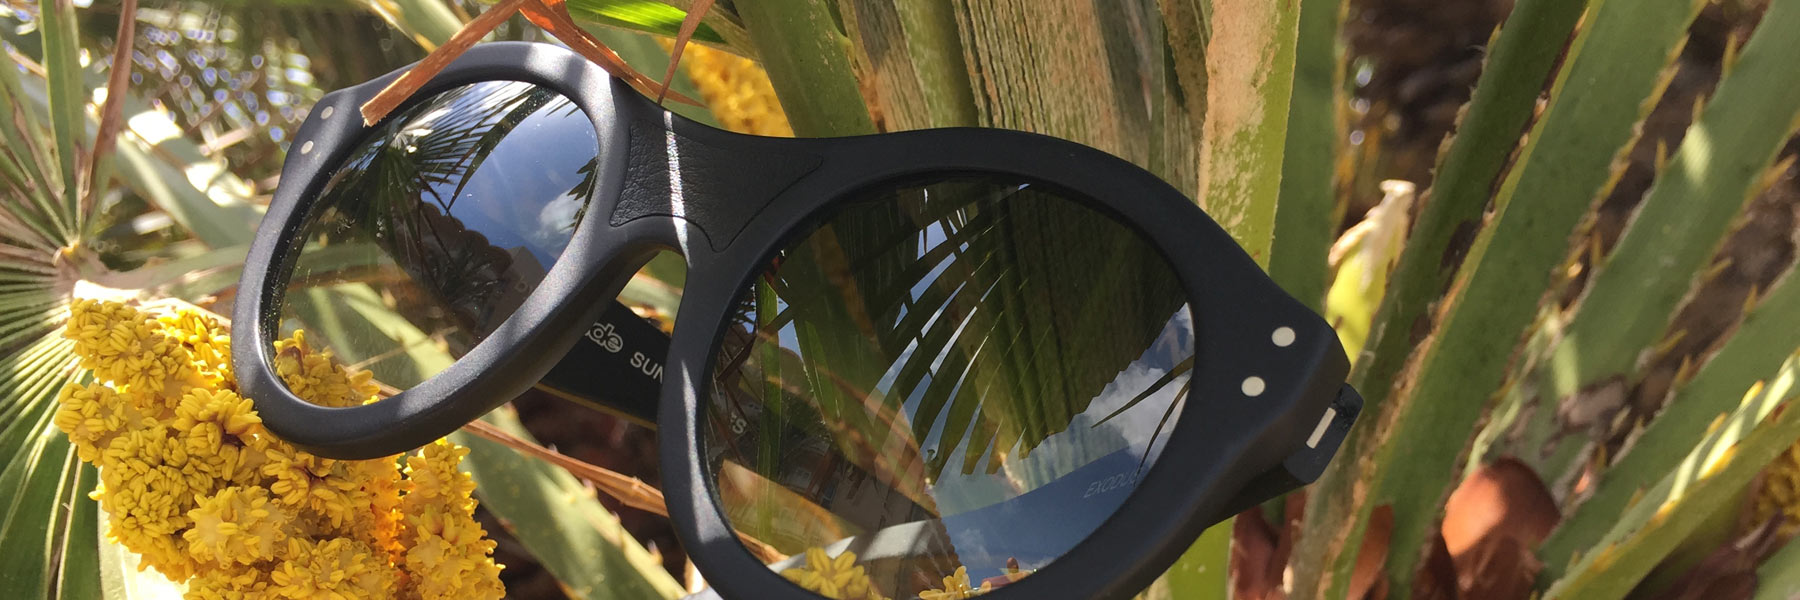 Wilde-Sunglasses-EXODUS-new-Collection-Barcelona_madrid_handcrafted_best_atore_6.jpg